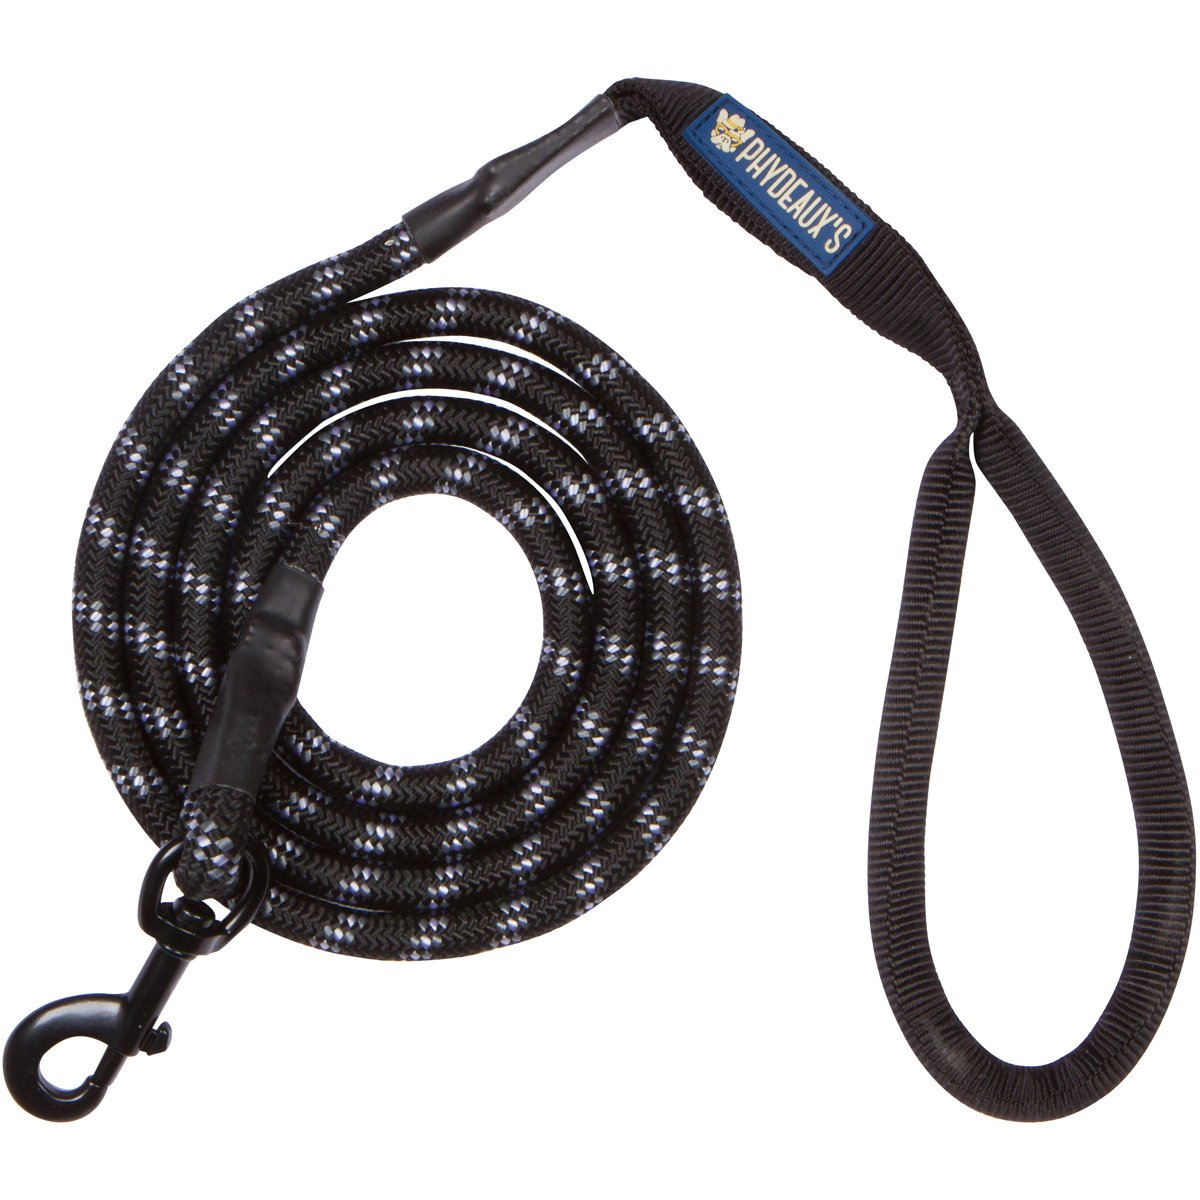 Phydeaux's Mountain Climbing Rope Dog Leash - 6 ft Long - Premium Quality - Perfect for Medium and Large Dogs (Black) by Phydeaux's Pet Supply